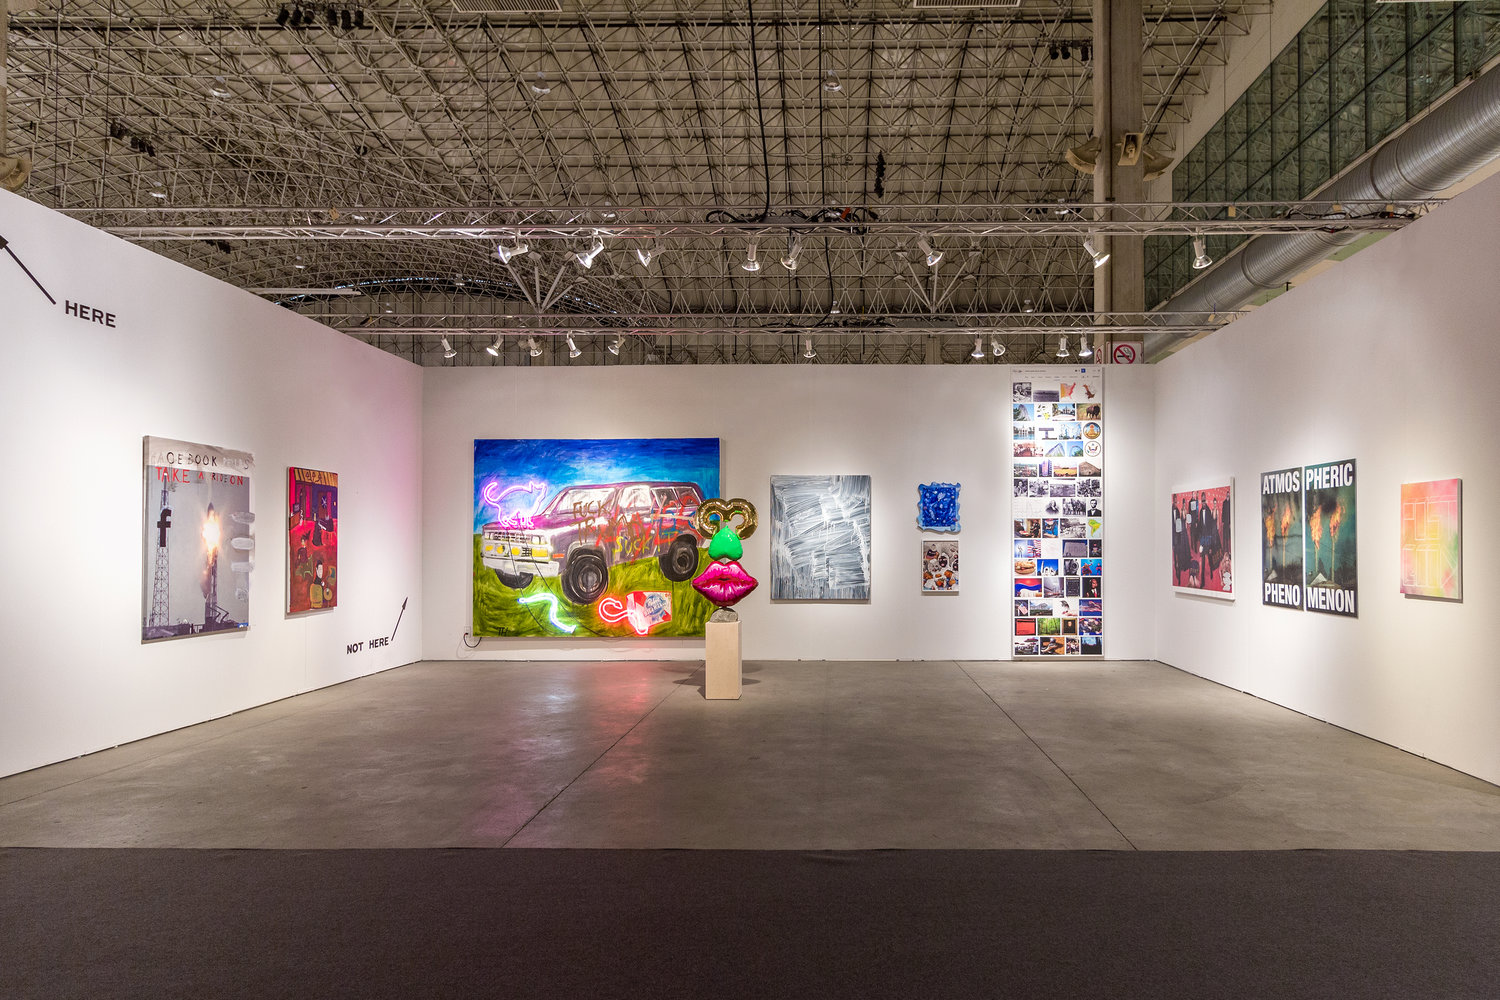 Installation view of Library Street Collective booth at EXPO Chicago, 2018. Image copyright Library Street Collective.